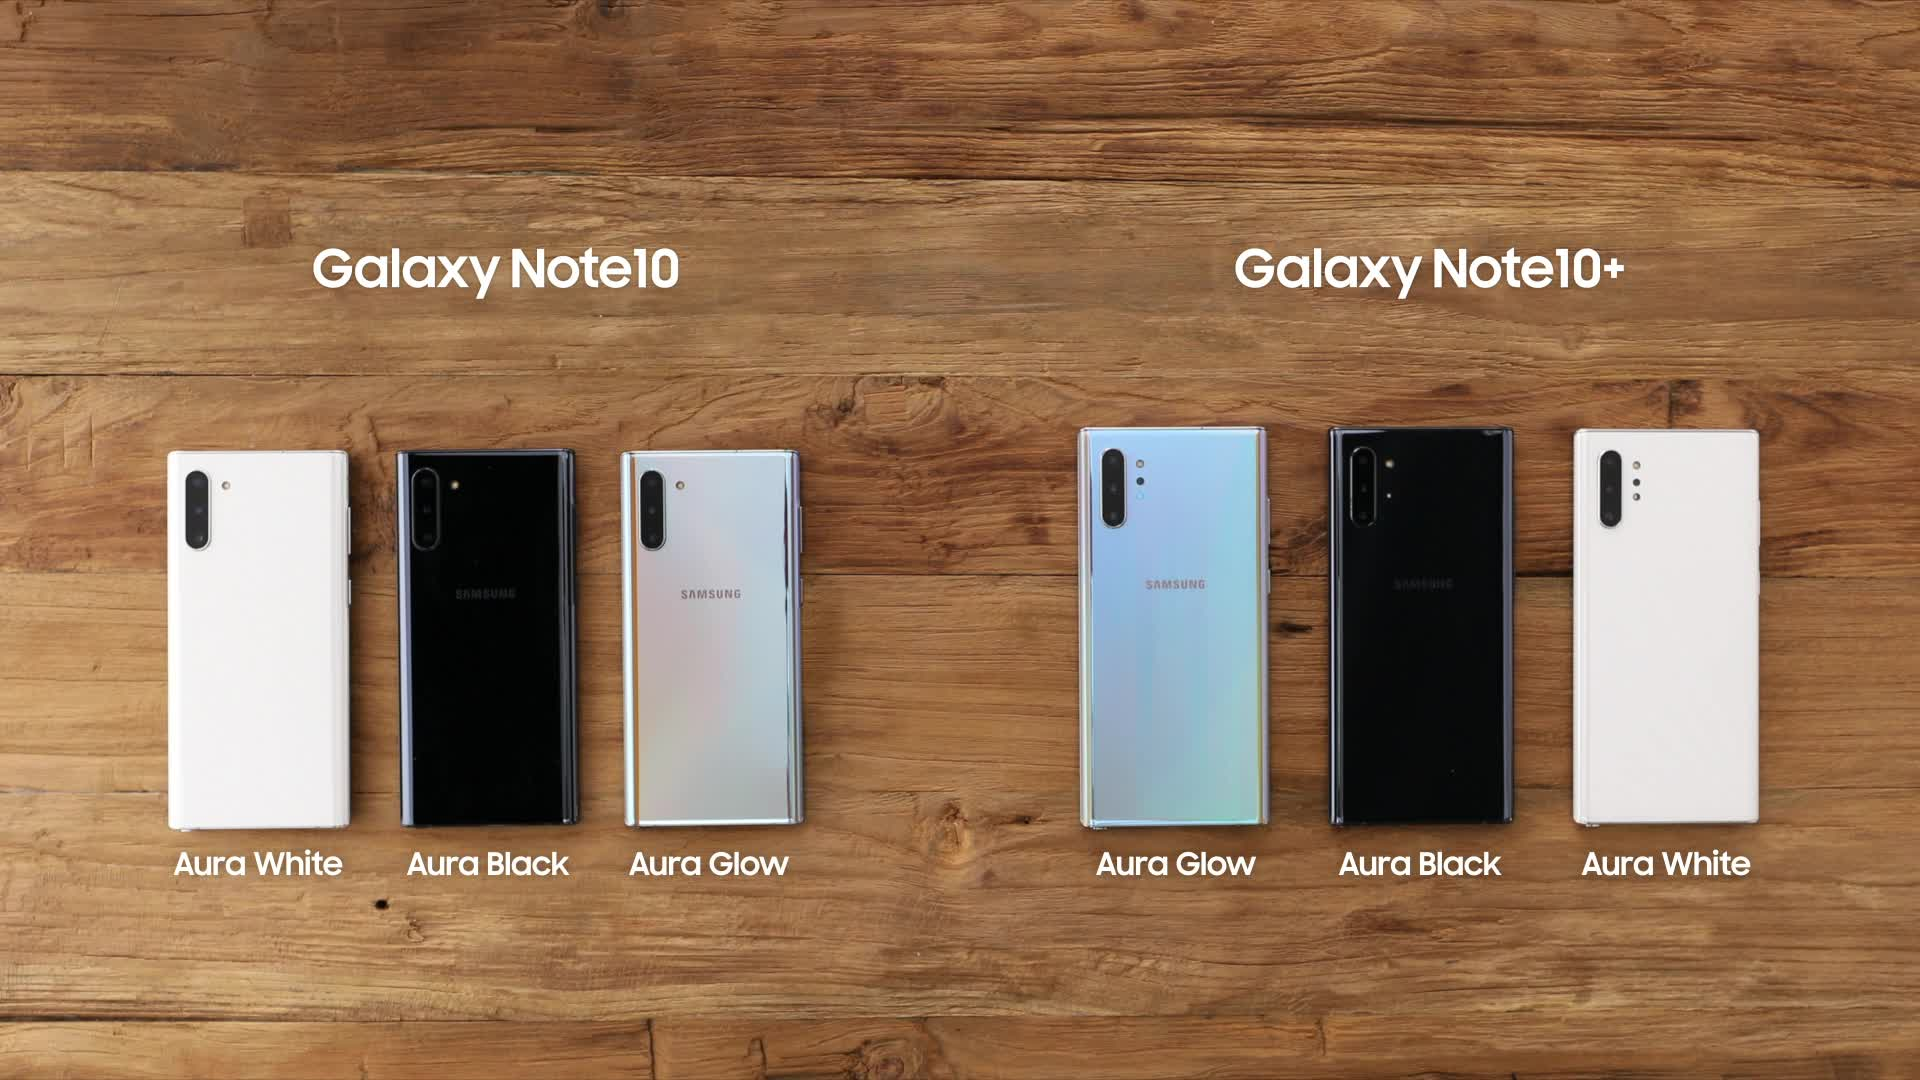 Smartphone, Android, Samsung, Samsung Galaxy, Galaxy, Samsung Mobile, Samsung Galaxy Note 10, Galaxy Note 10, Samsung Galaxy Note 10 Plus, Samsung Galaxy Note 10+, 00